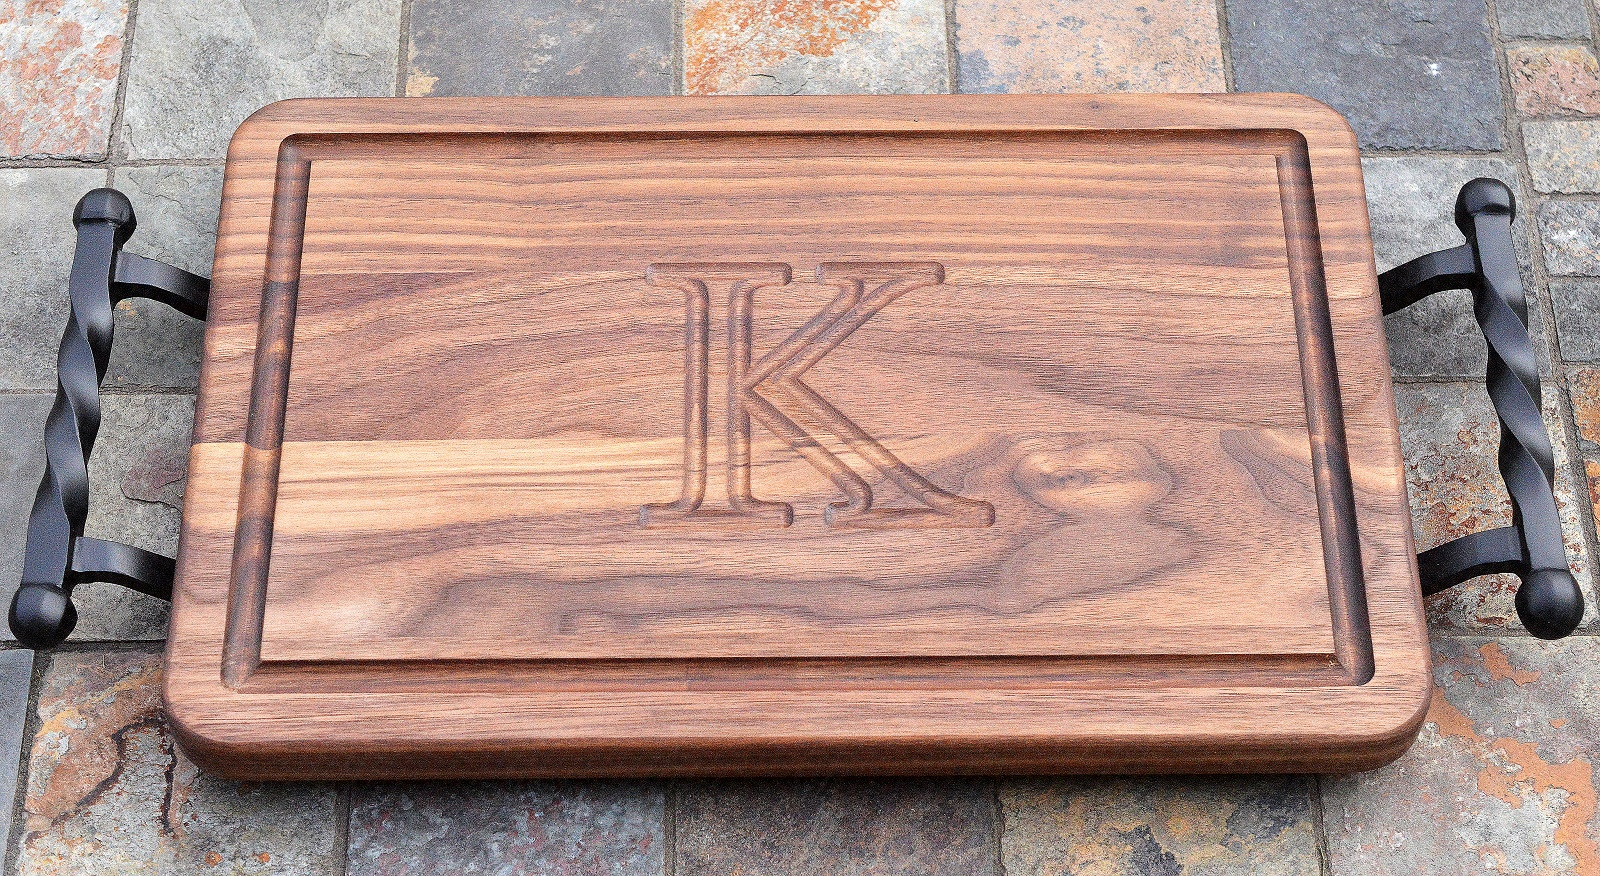 Walnut Wood Twisted Iron Monogramed Cutting Board made in the USA from www.cuttingboard.com